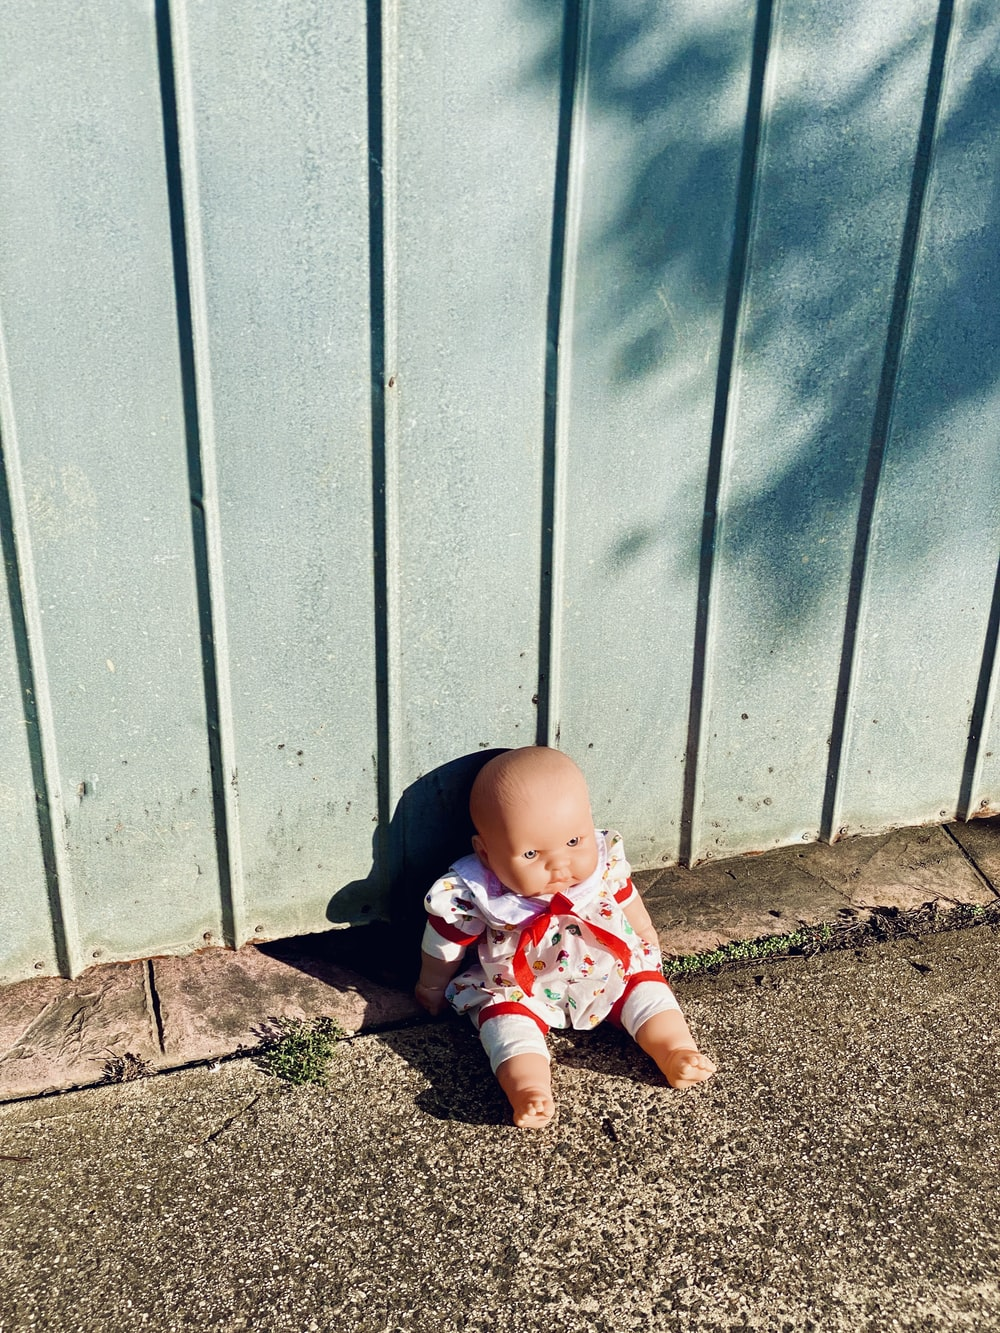 baby in white and red shirt and pants sitting on brown dirt